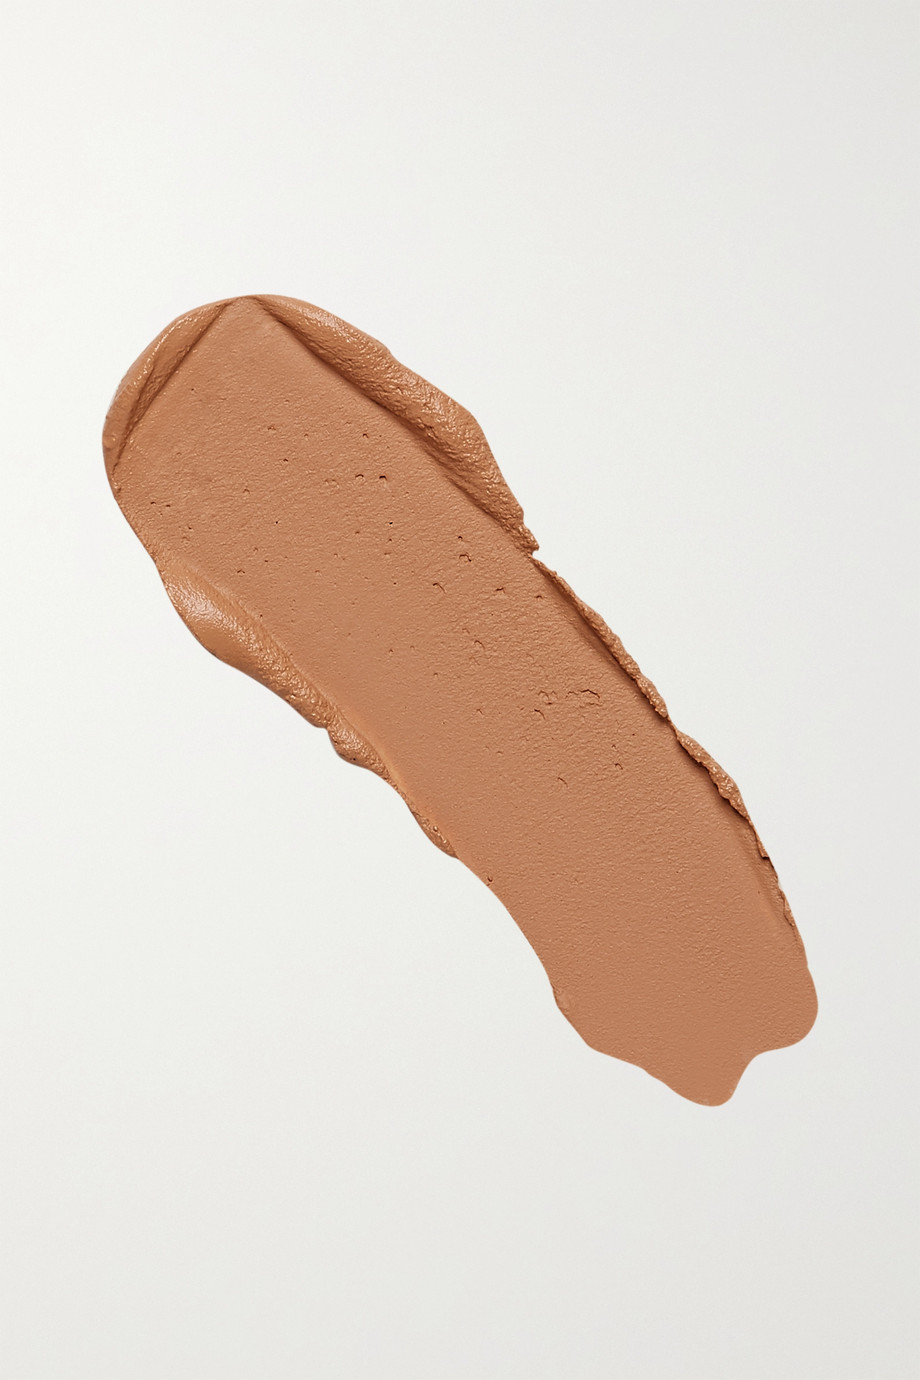 Kjaer Weis Invisible Touch Concealer – M230 – Concealer